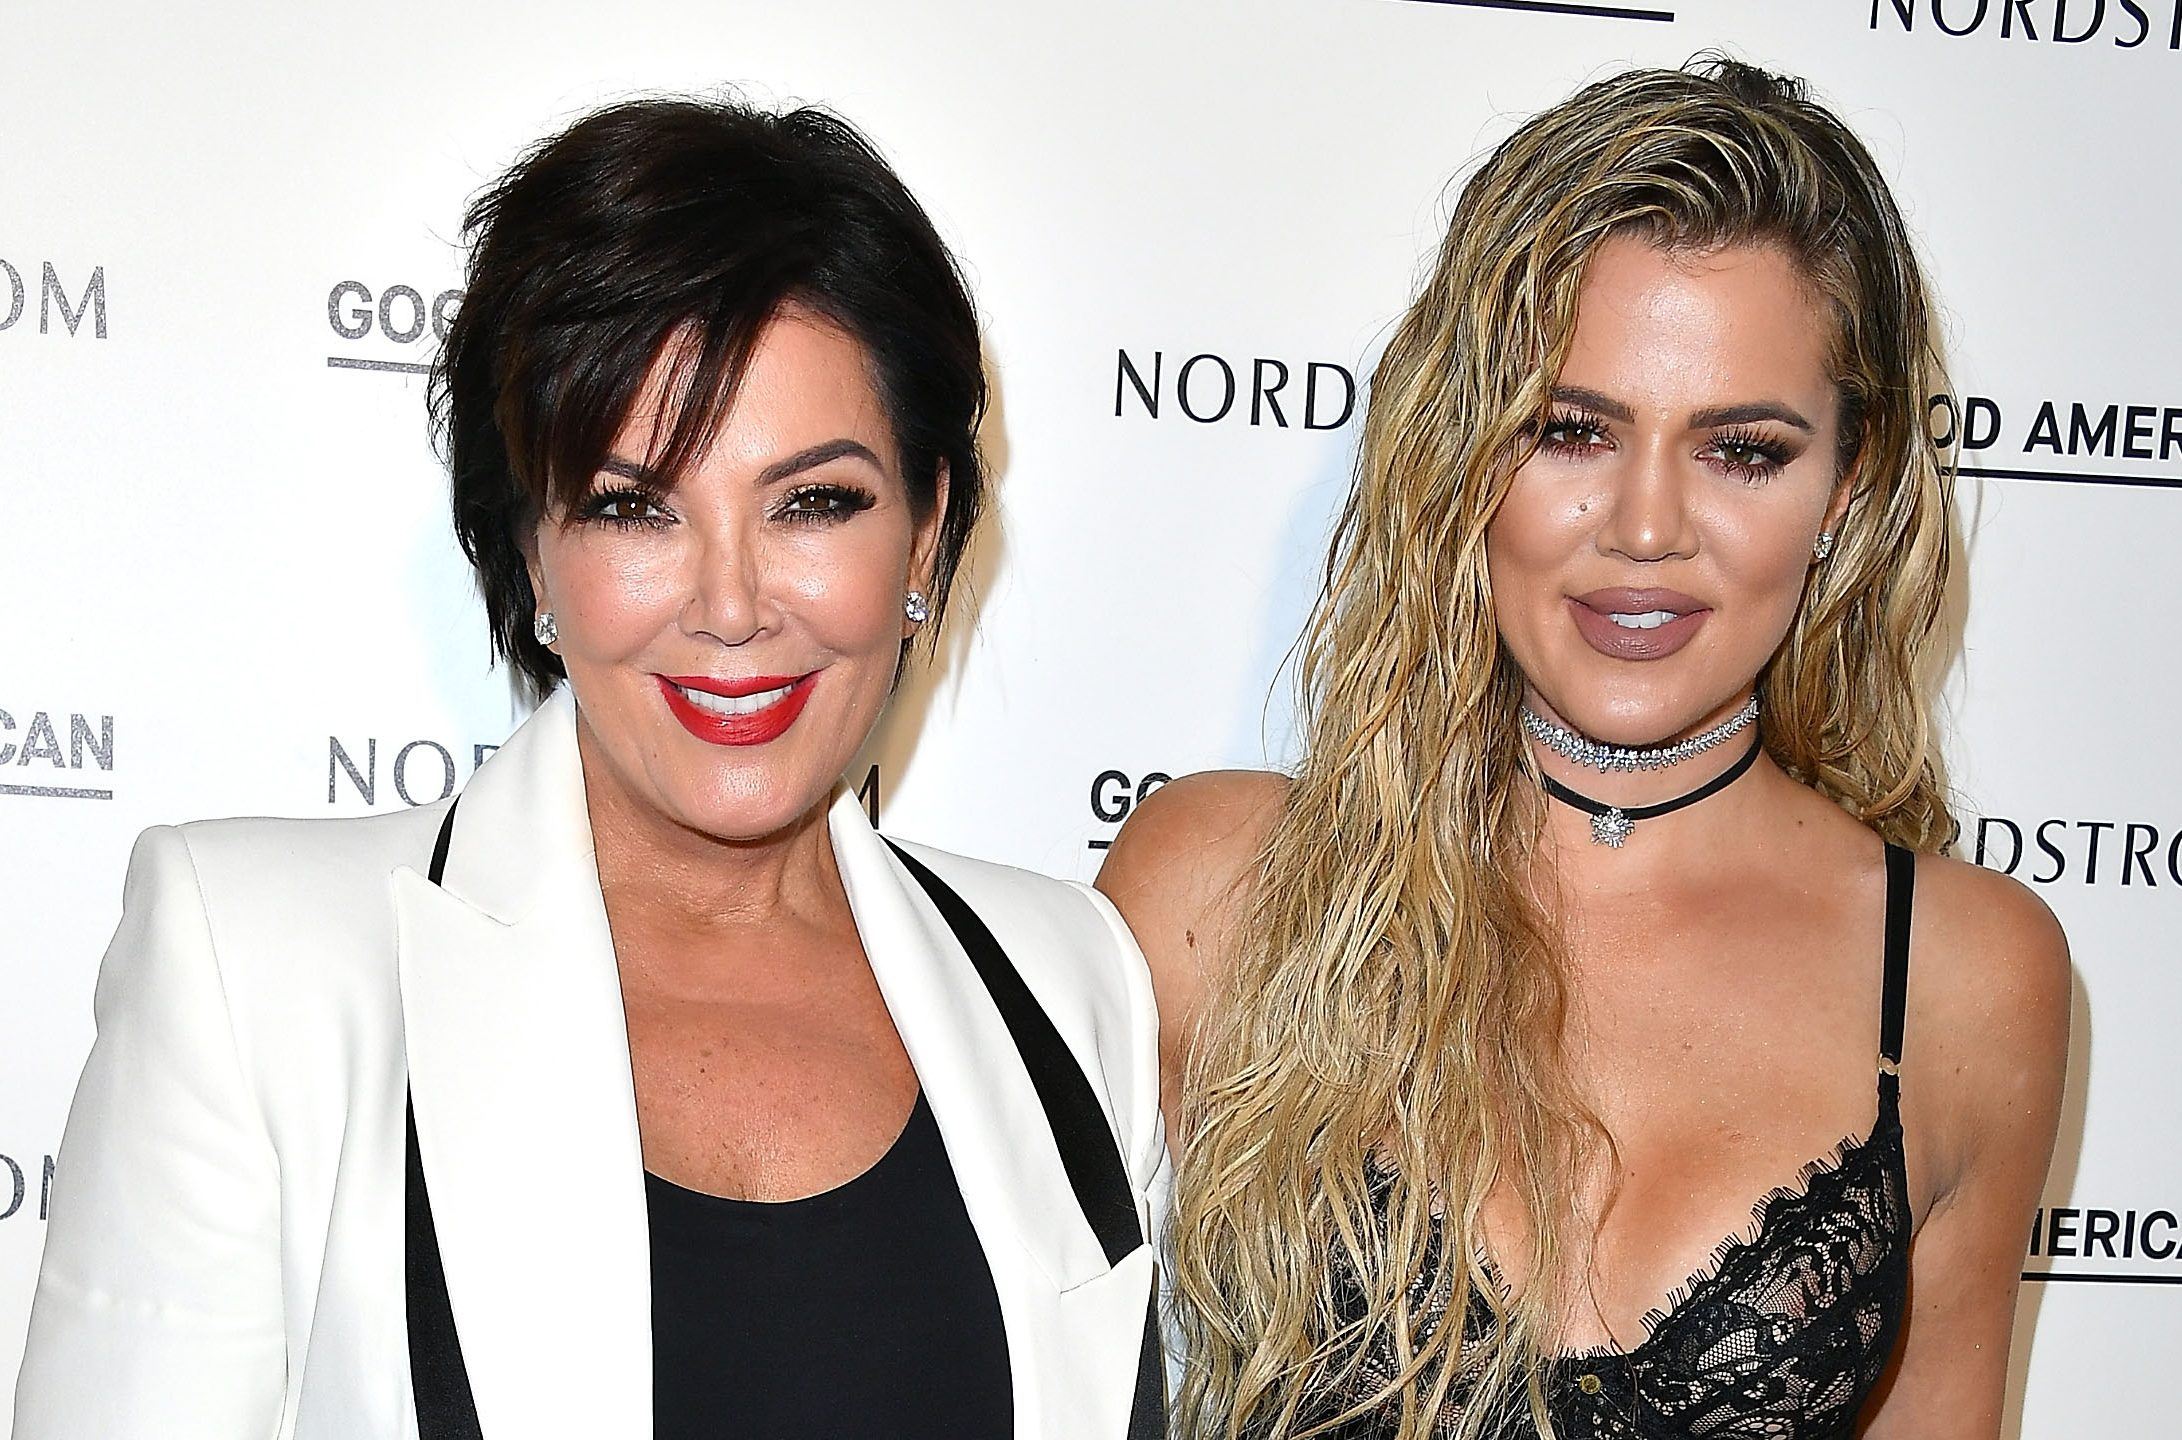 Kris Jenner is one heck of a generous mum as she hands Khloe Kardashian sentimental gift